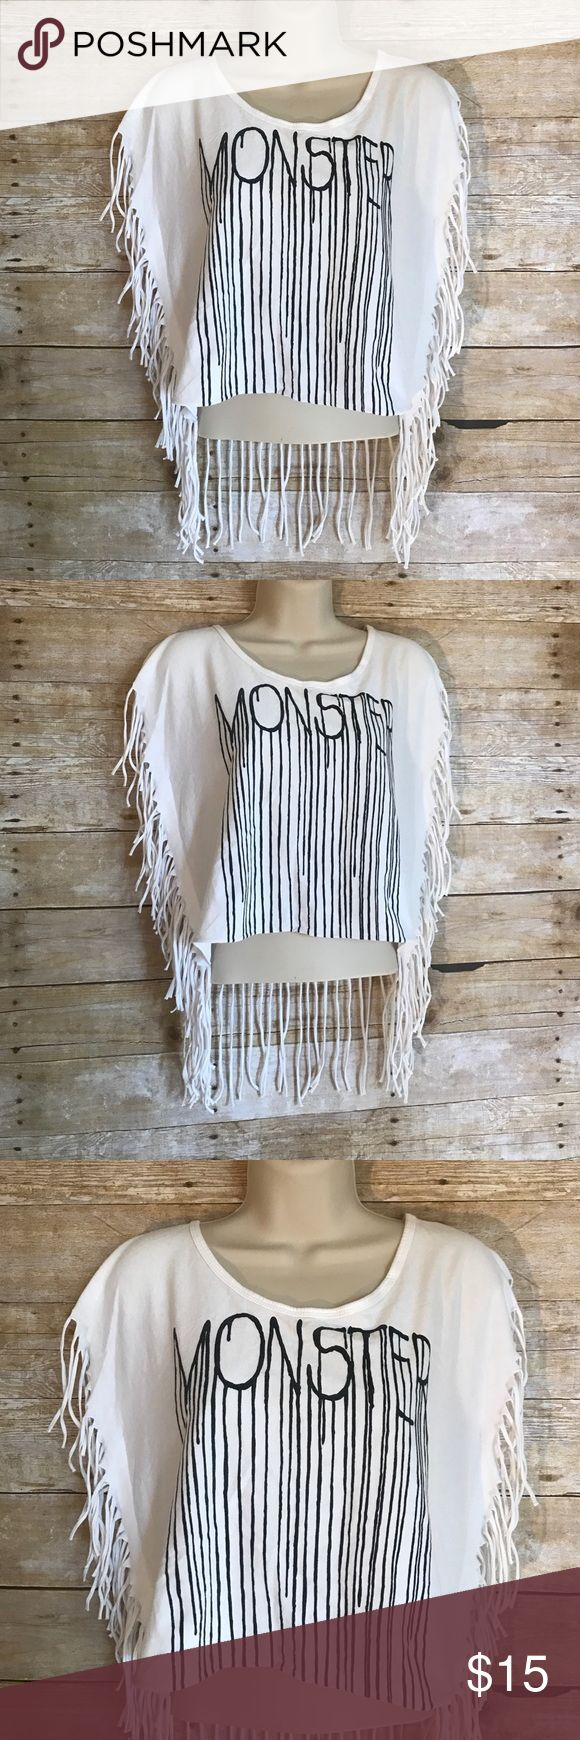 "'Monsters' Discovery Island Crop top SzM Coachella Discovery Island Brand - size medium - white crop top - black letters "" MONSTERS"" black ink drip - Coachella inspired fringe trim - excellent condition - ‼️FAST SHIPPING‼️ Discovery Island  Tops Crop Tops"